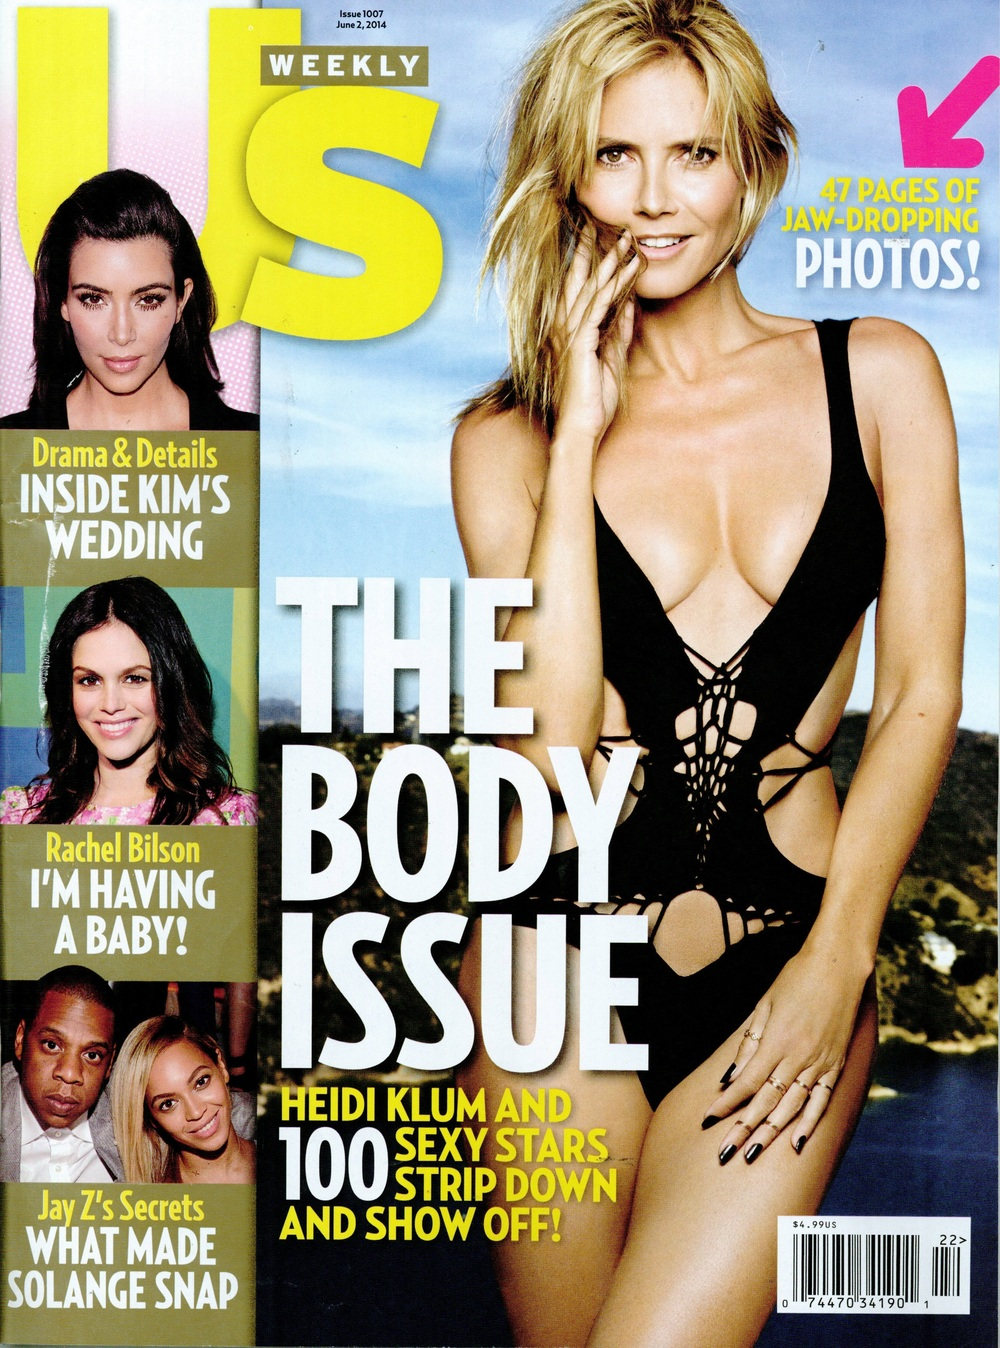 US Weekly - Cover - June 2 2014.jpg